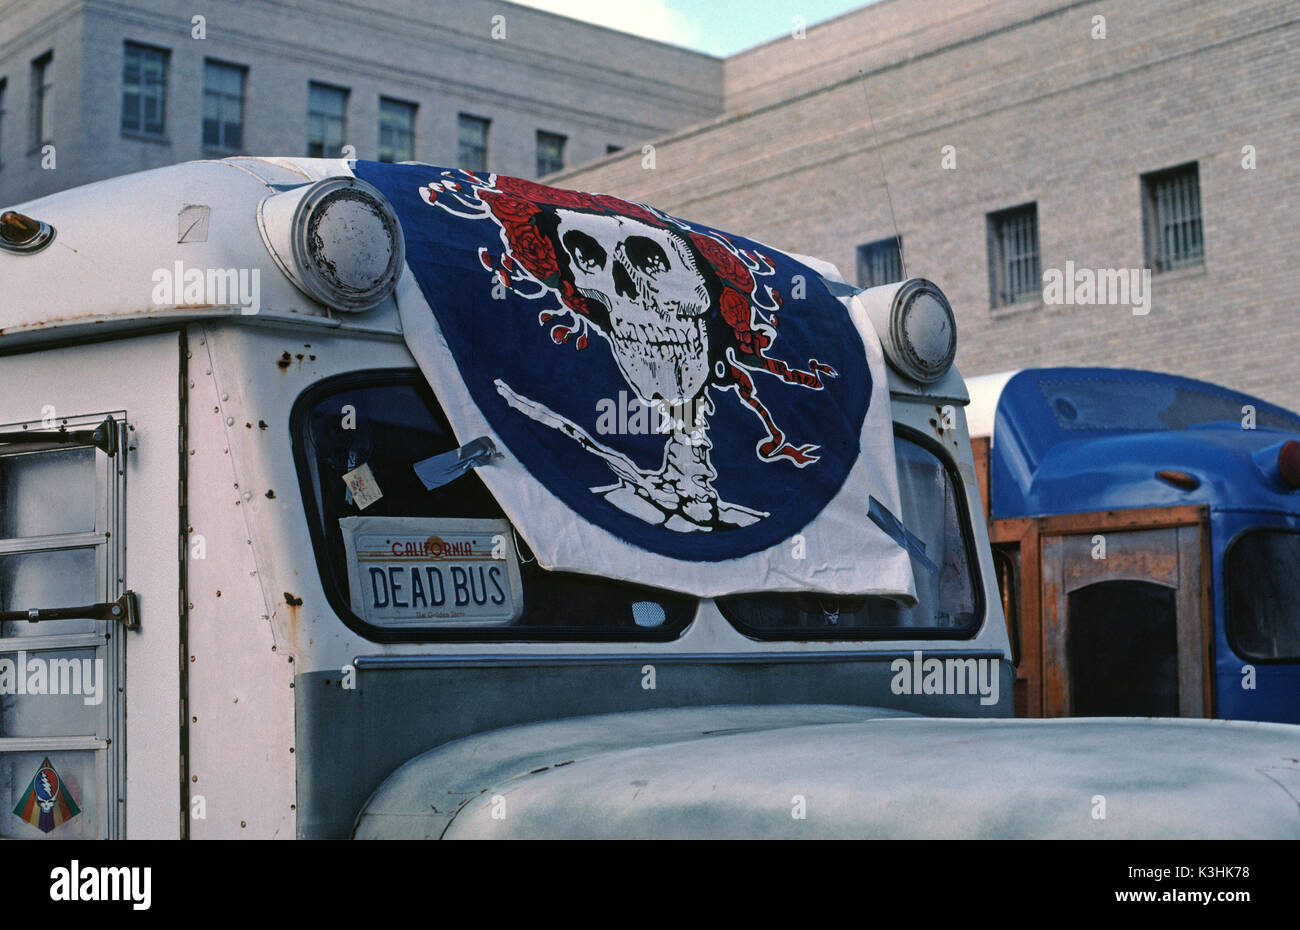 Grateful Dead fans, Dead Heads, bus, parked in San Francisco for a